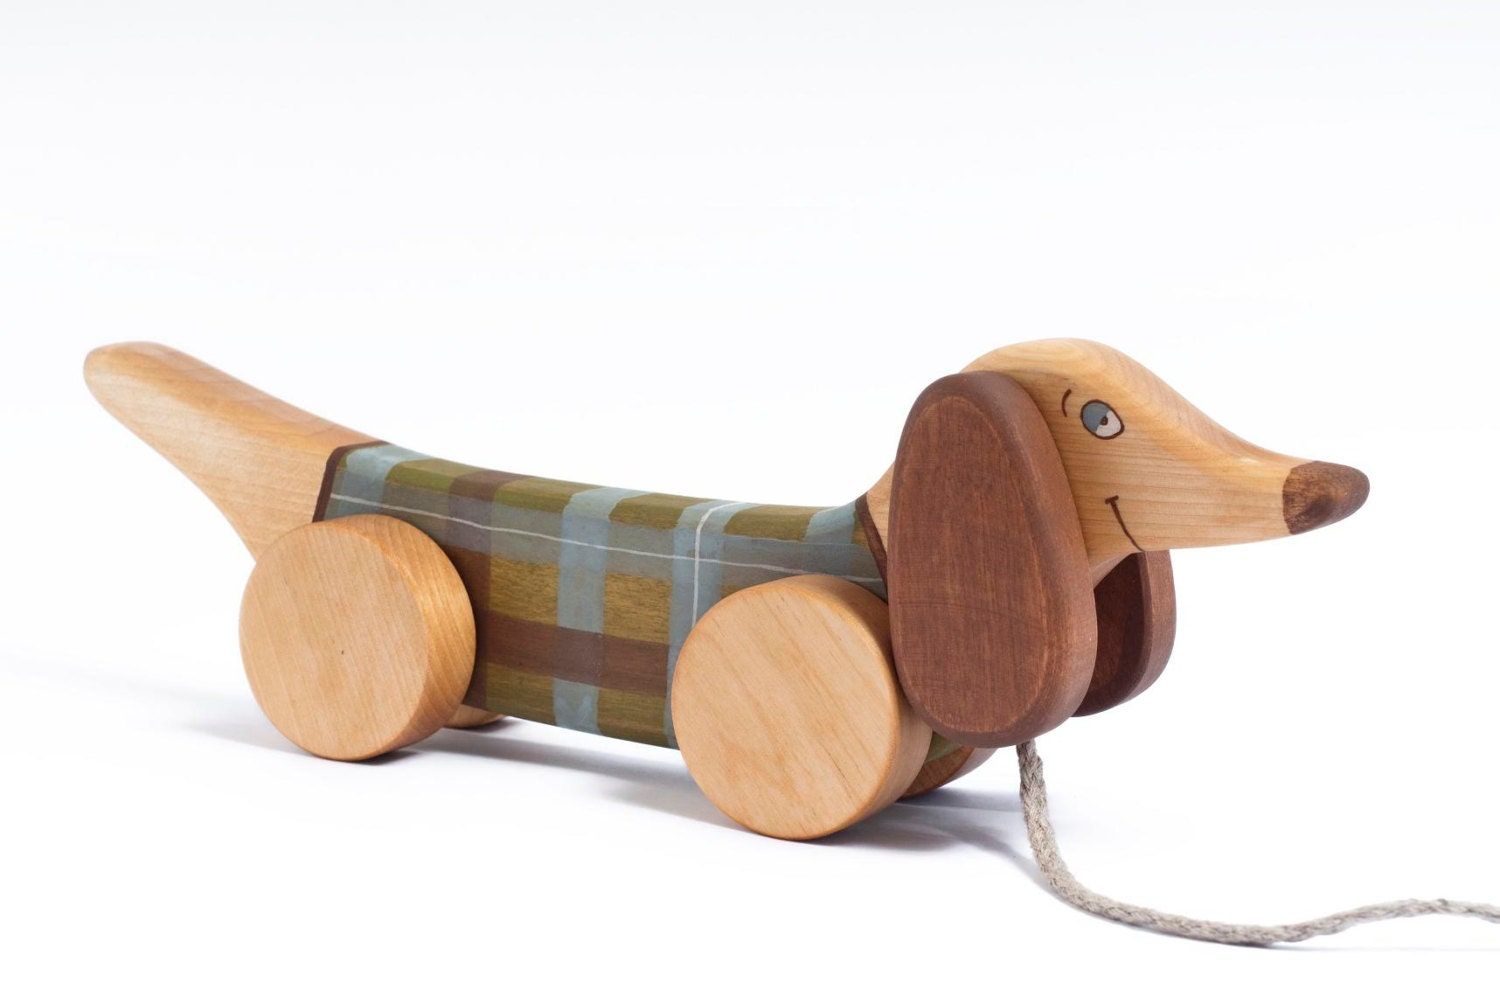 Kids Wooden Toy pull along toy Green Dog by FriendlyToys on Etsy